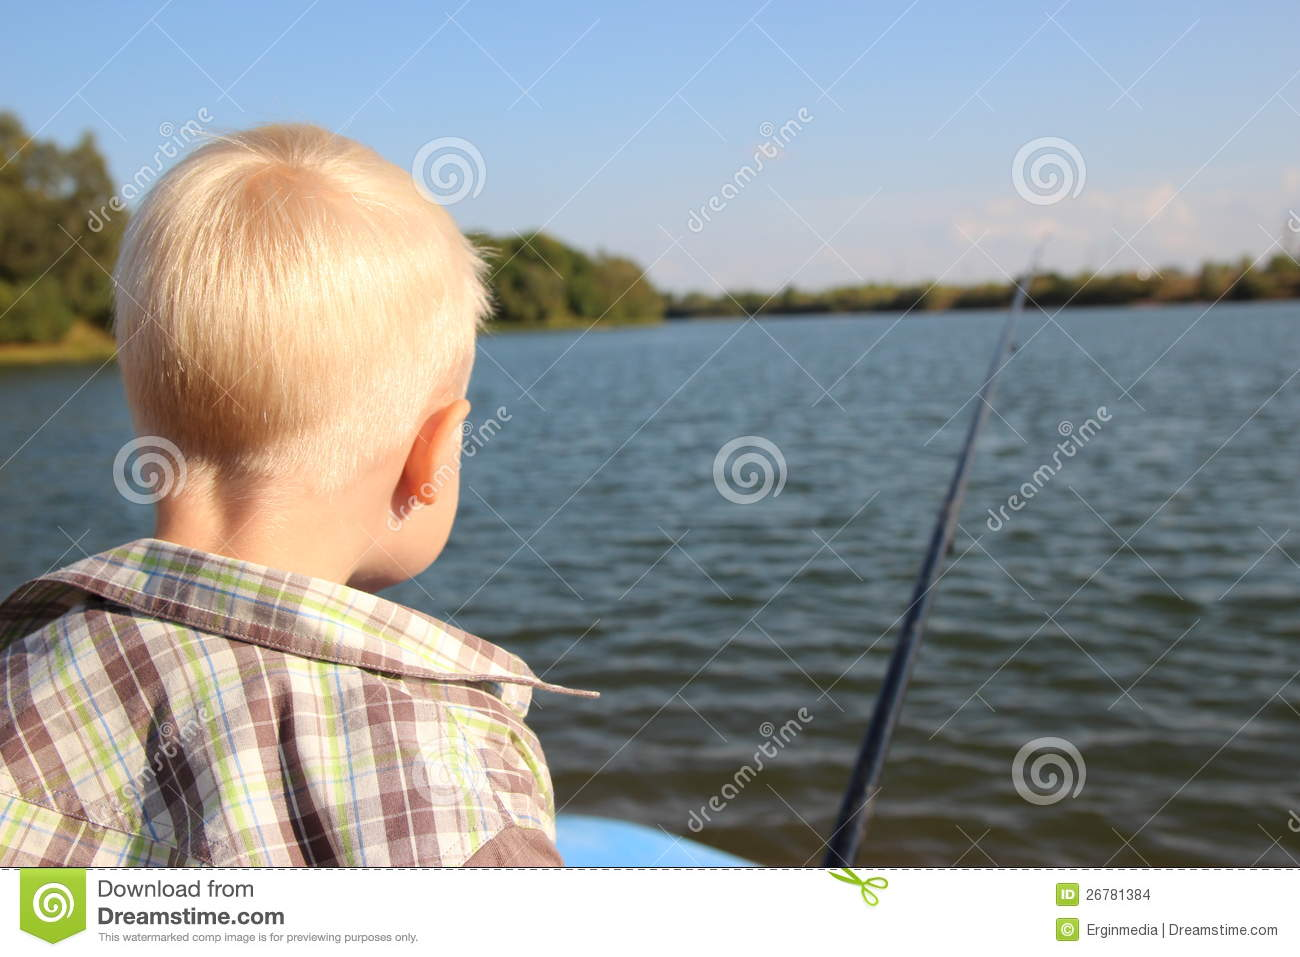 Fishing the little boy stock images image 26781384 for Little boy fishing